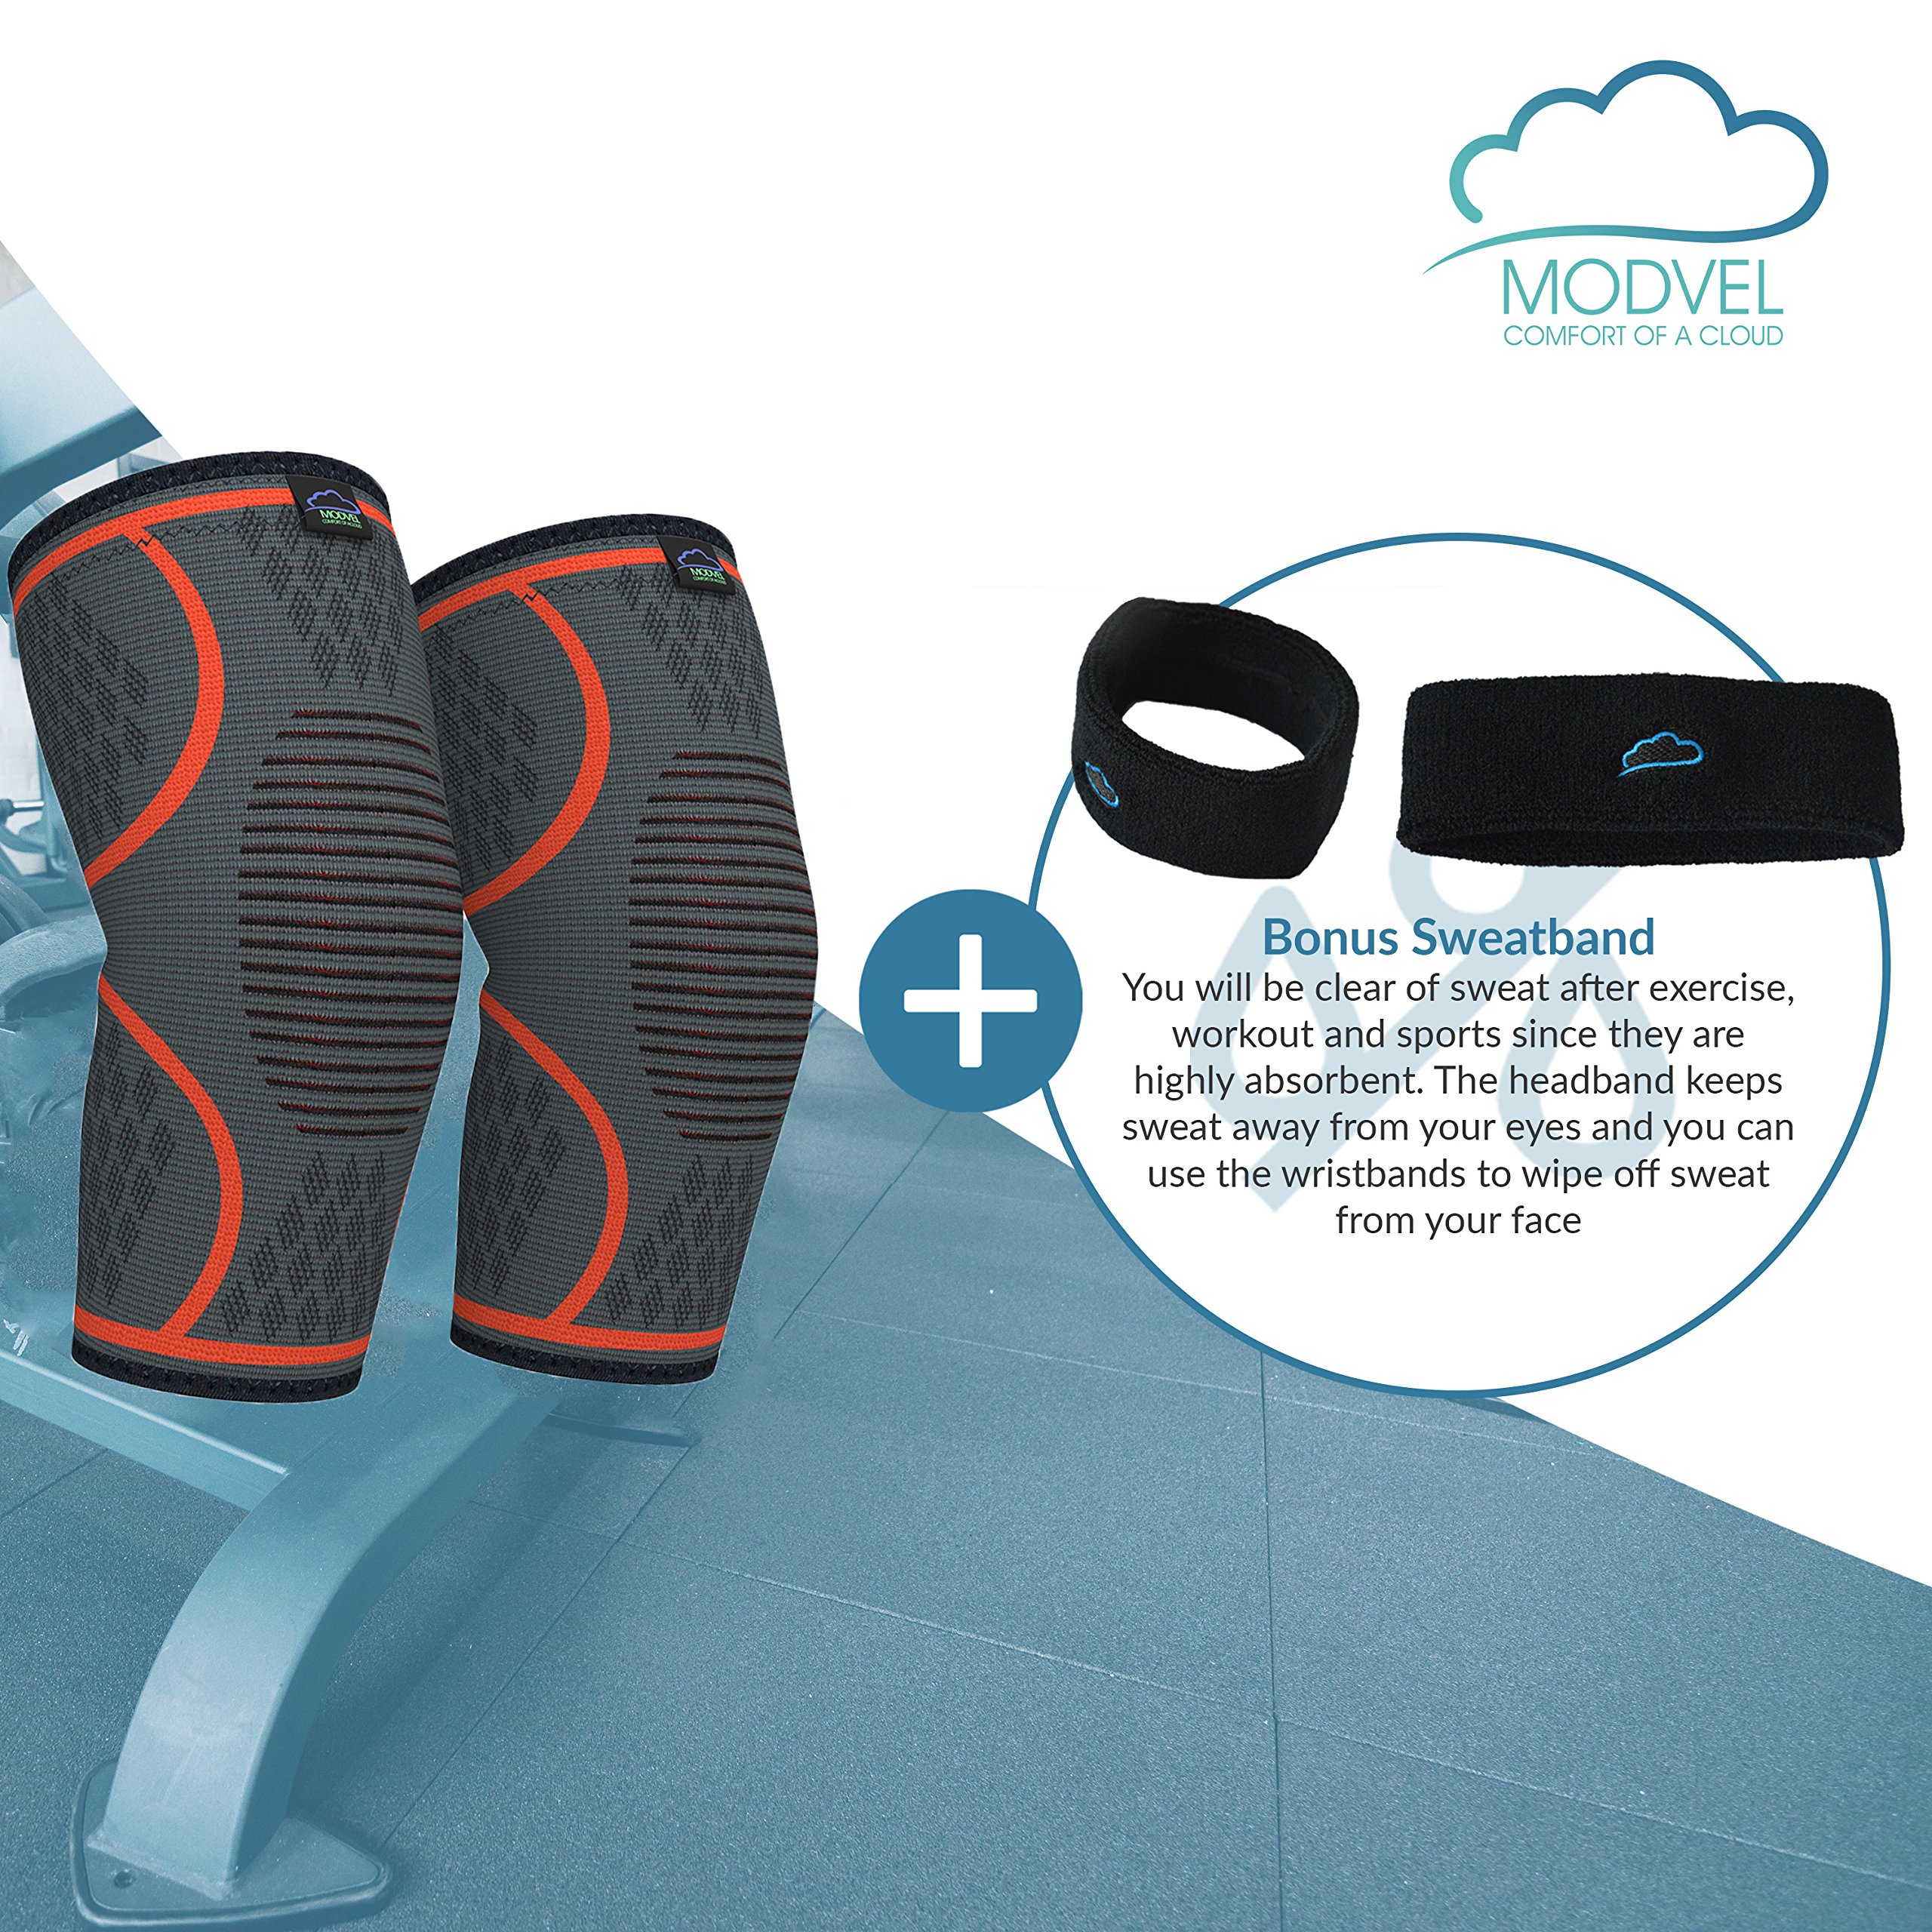 Modvel Compression Knee Sleeve (1 Pair) - Ultra Flexible, Comfortable Knee Brace for Men and Women, Great for All Athletics, Volleyball, ACL, Stabilizer for Arthritis and Knee Pain Relief, M (MV-111) by Modvel (Image #2)